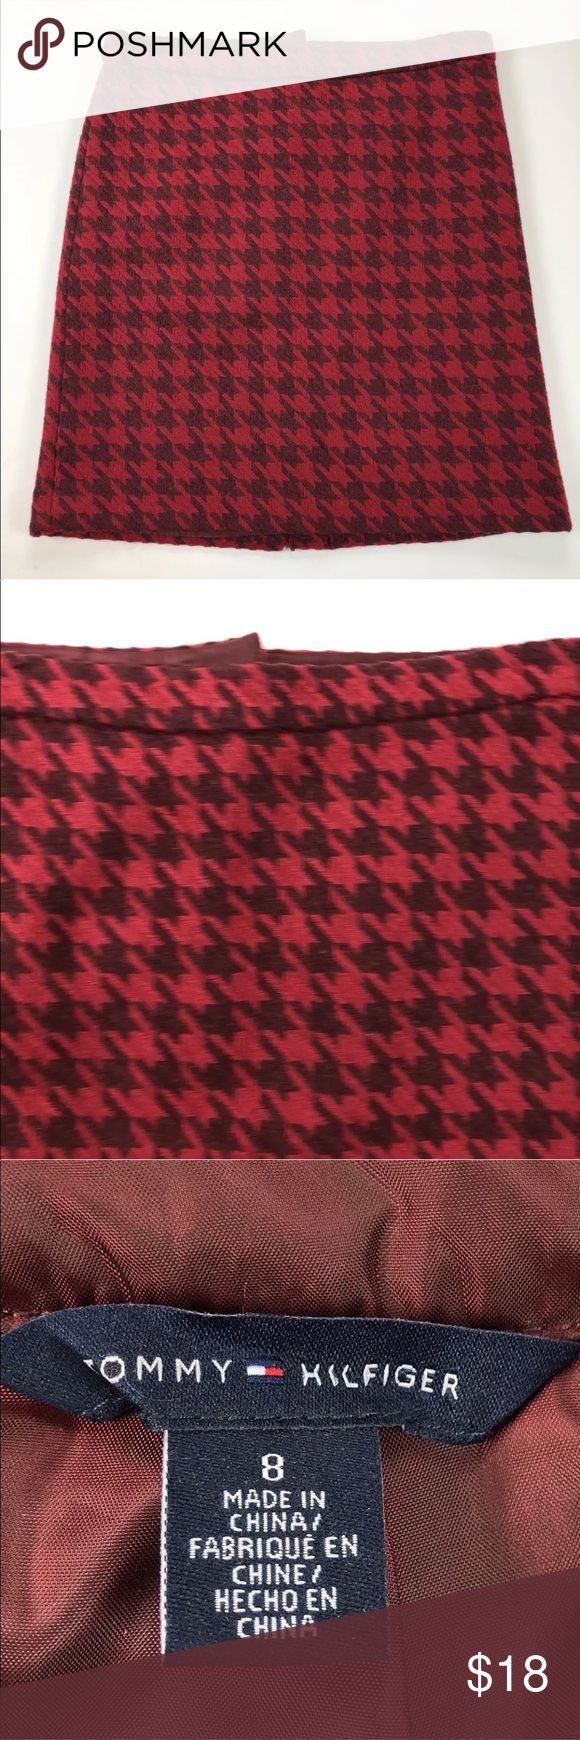 """Tommy Hilfiger Skirt Size 8 Red Houndstooth Wool Tommy Hilfiger  Womens Skirt  Size 8  Red Houndstooth  Lined  Wool Blend  Career 19"""" length 16.5"""" across waist Tommy Hilfiger Skirts"""